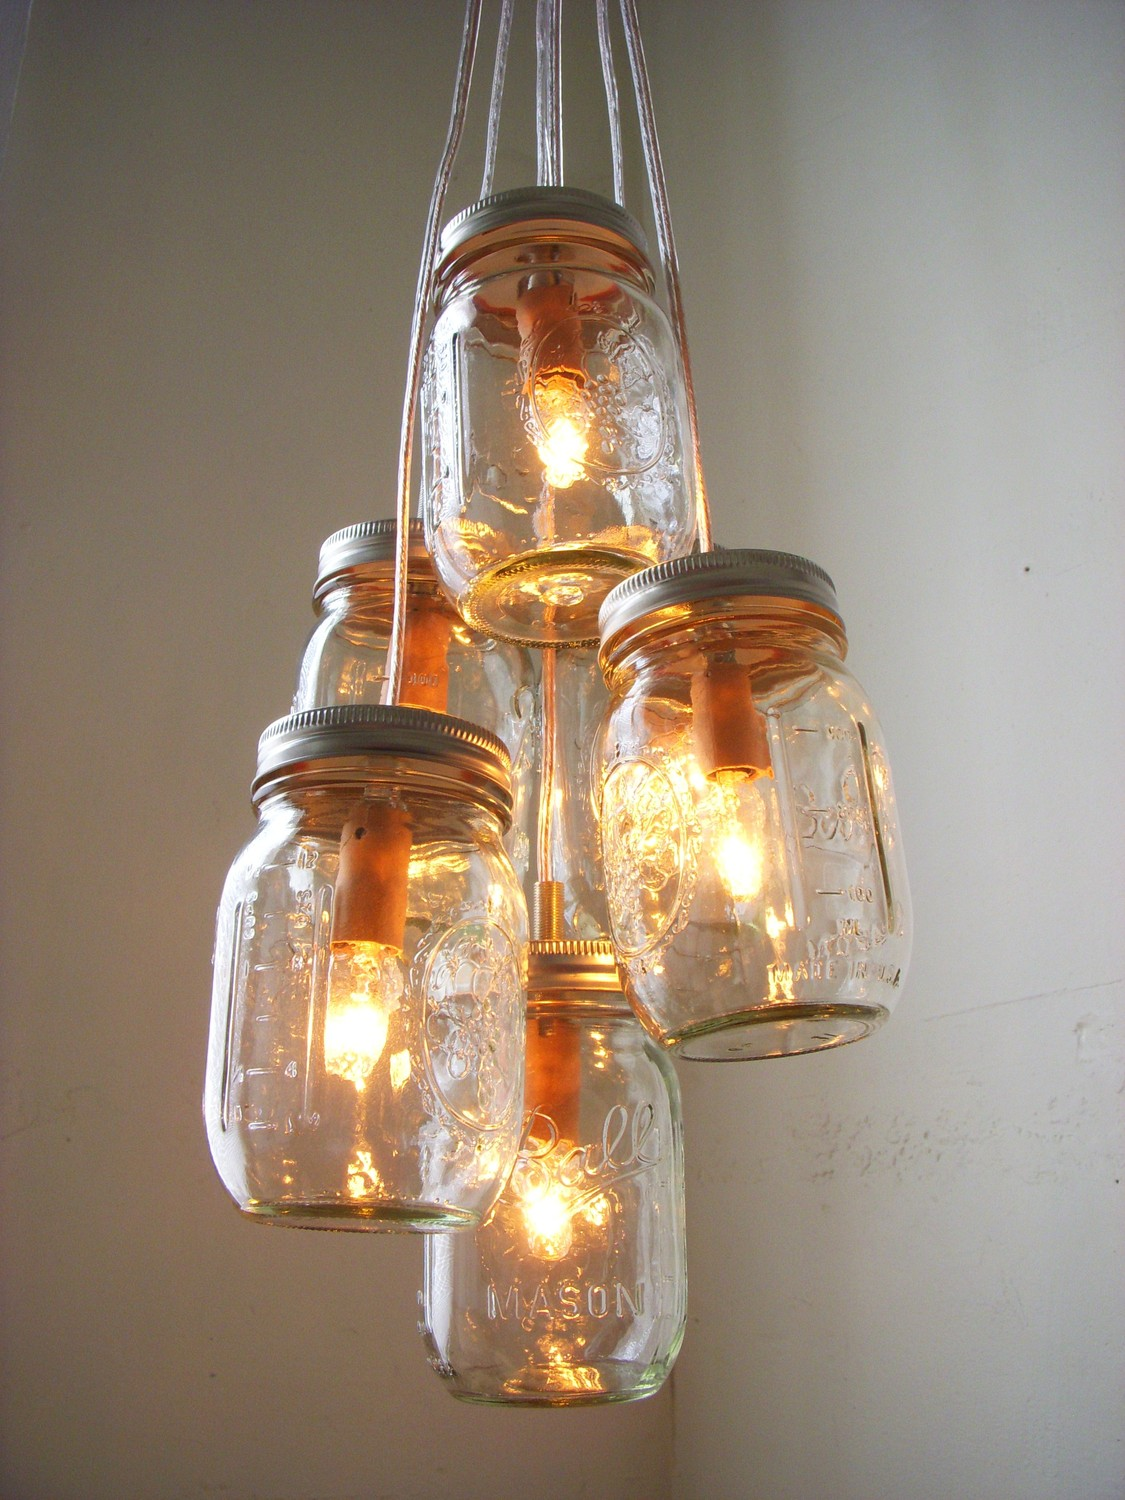 How to create mason jar lighting fixtures homesfeed for Hanging lights made from mason jars